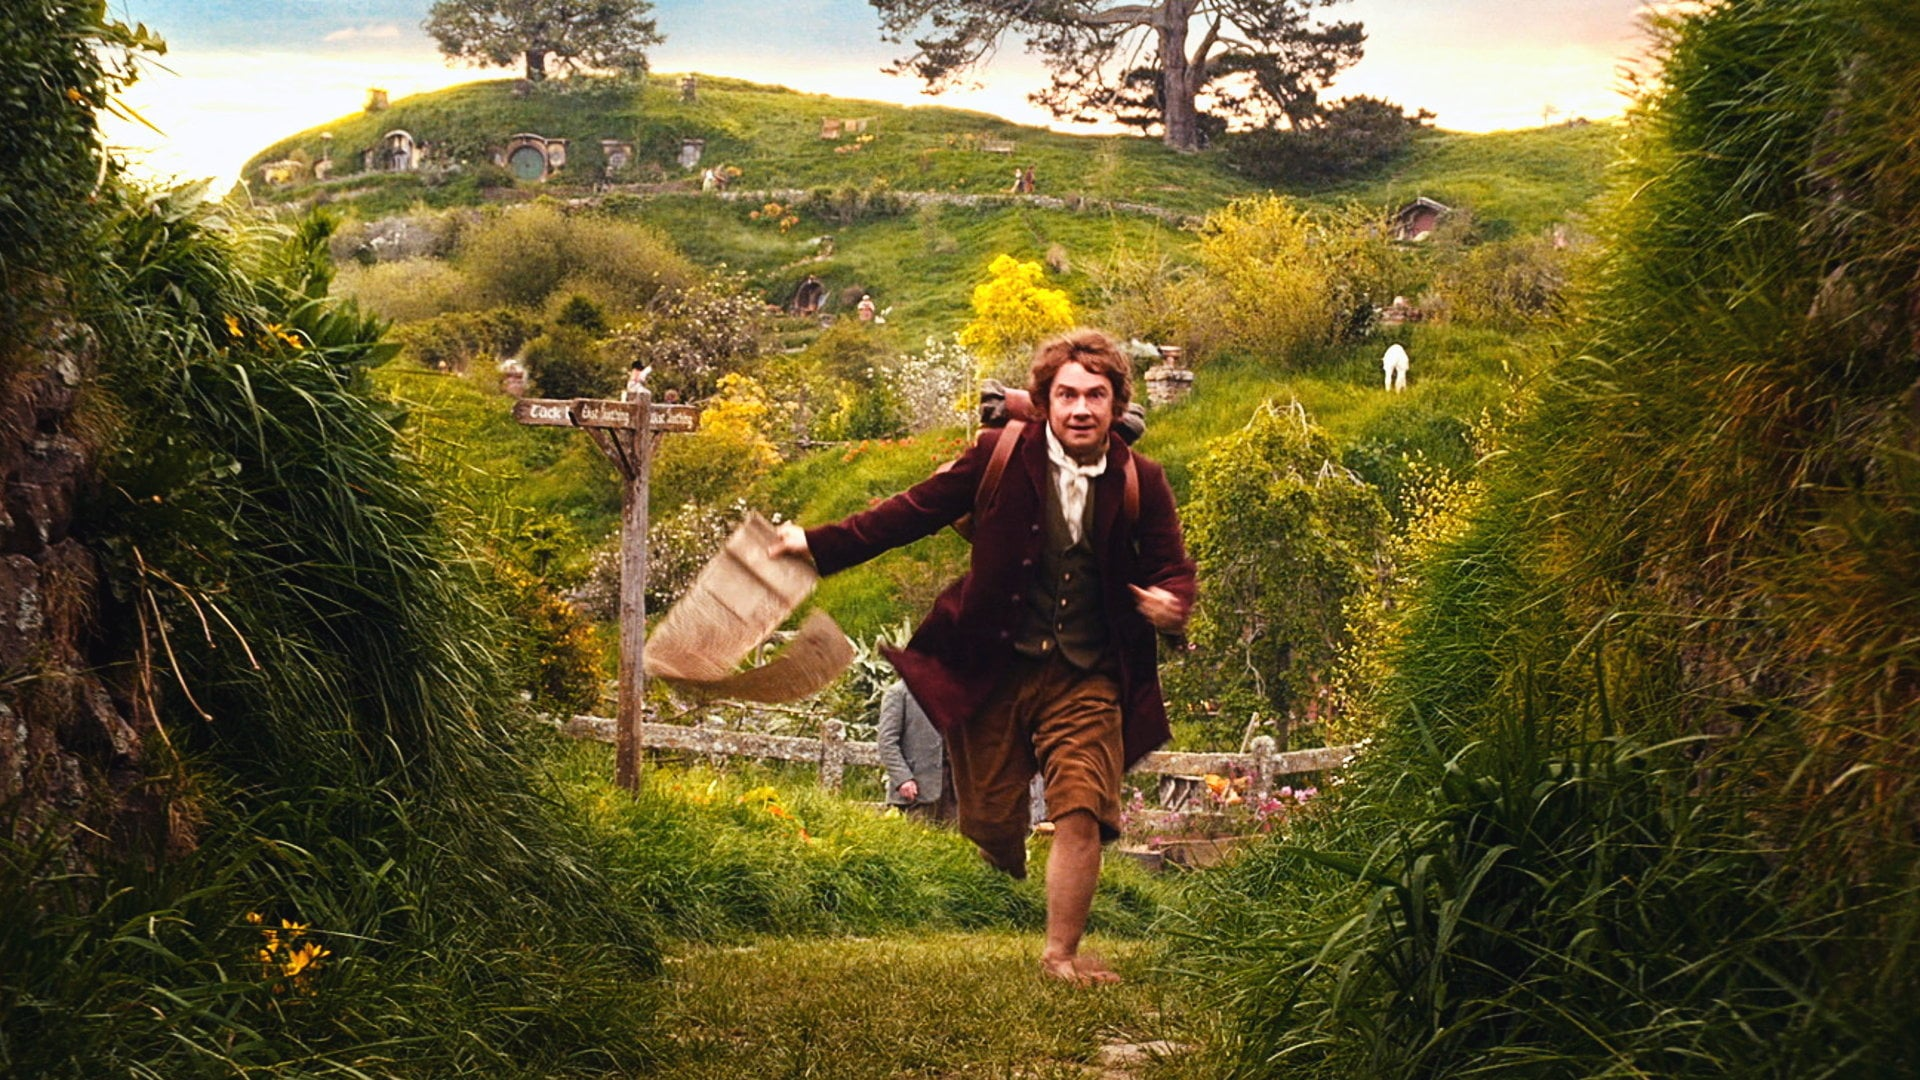 The Hobbit: An Unexpected Journey backdrop